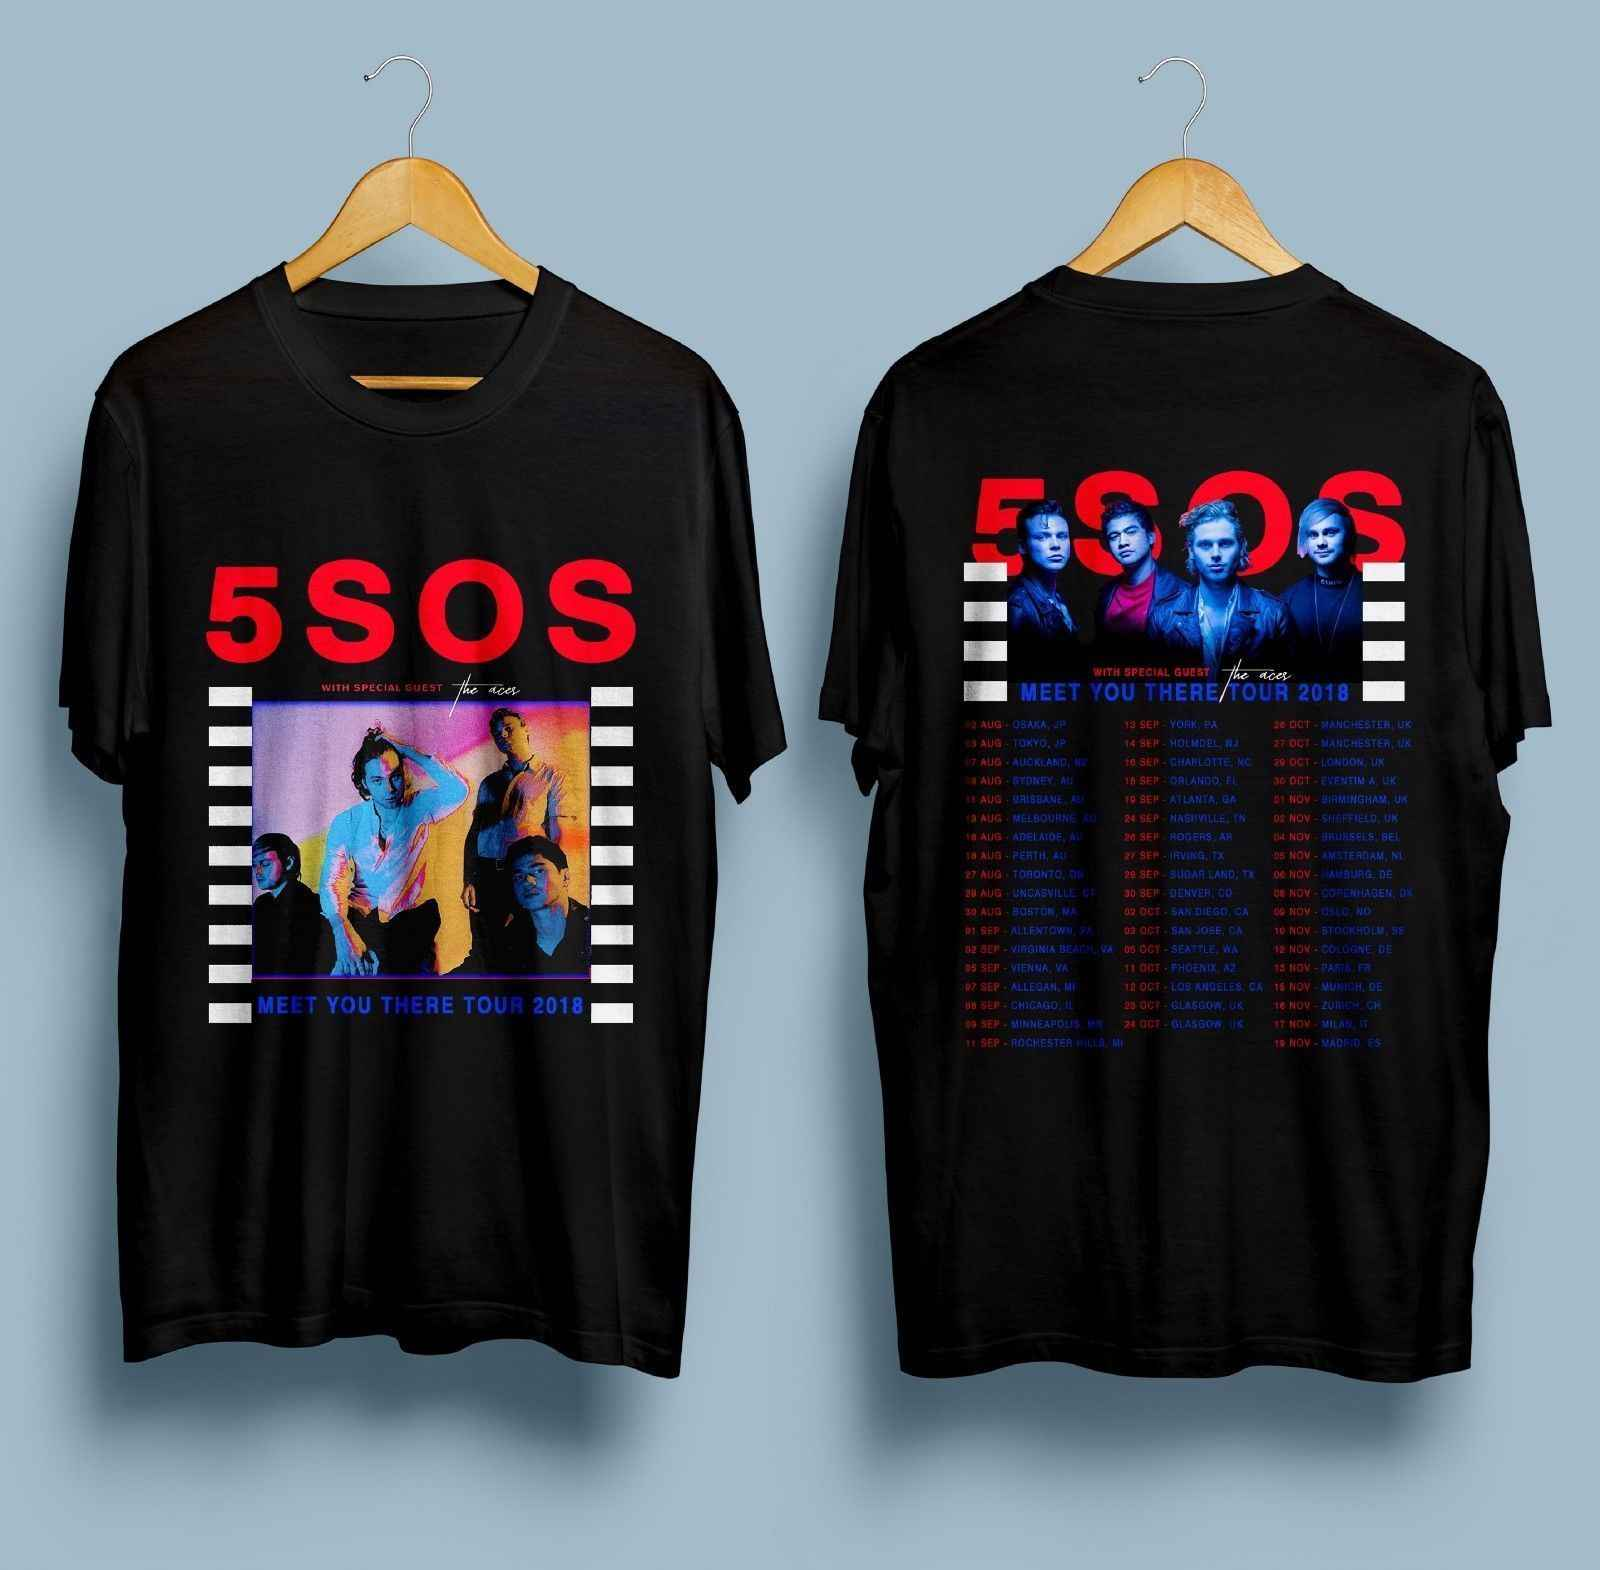 a732907e0f96 New 5 Seconds Of Summer 5SOS Meet You There Tour Dates 2018 T-Shirt Size